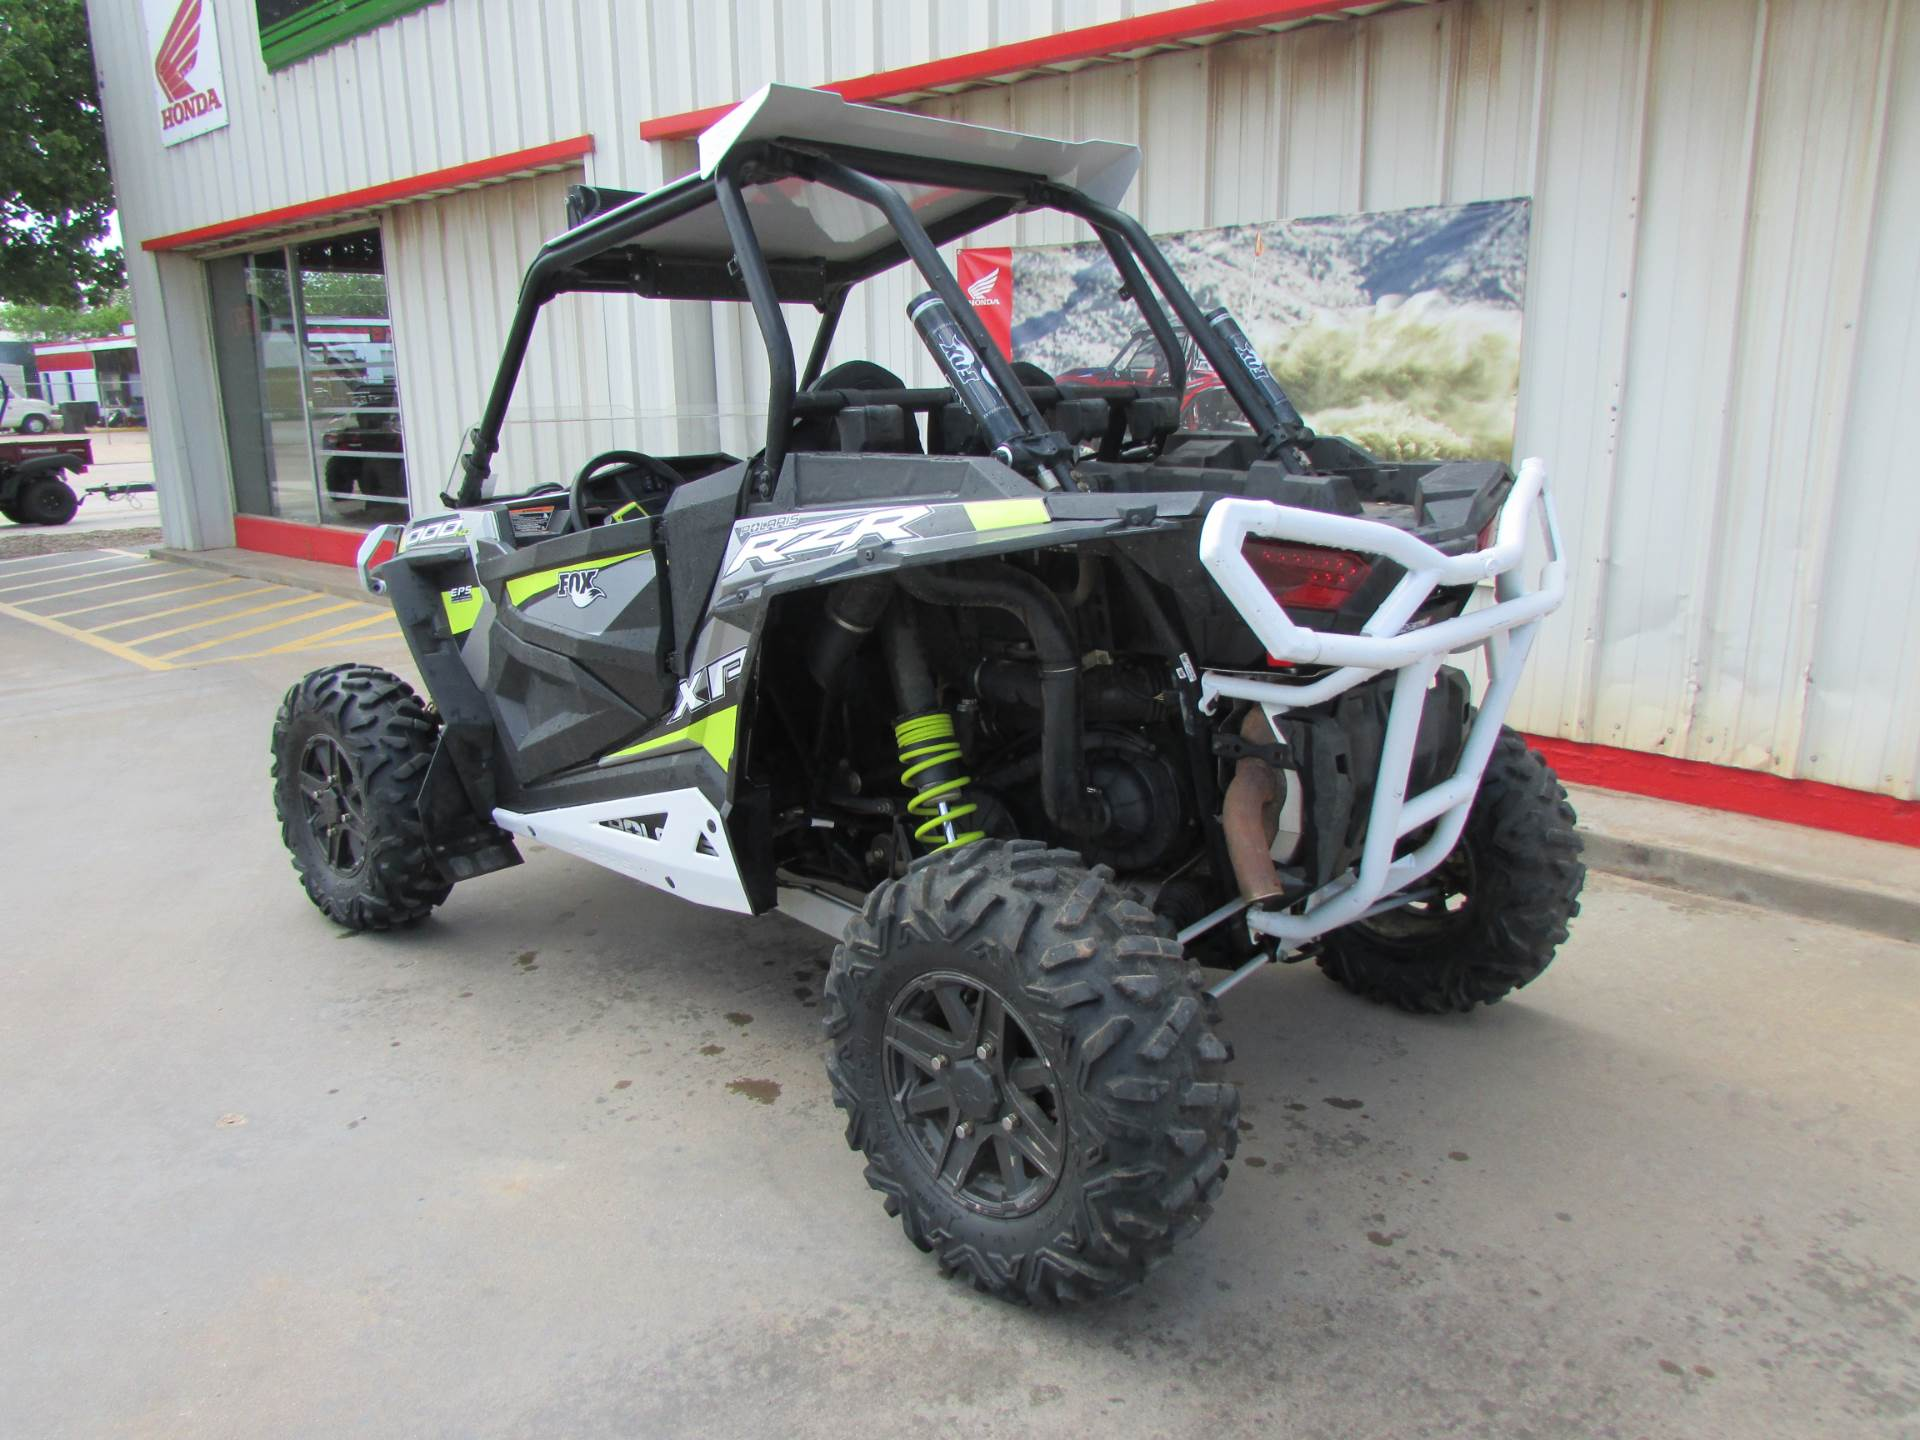 2015 Polaris RZR® XP 1000 EPS in Wichita Falls, Texas - Photo 5